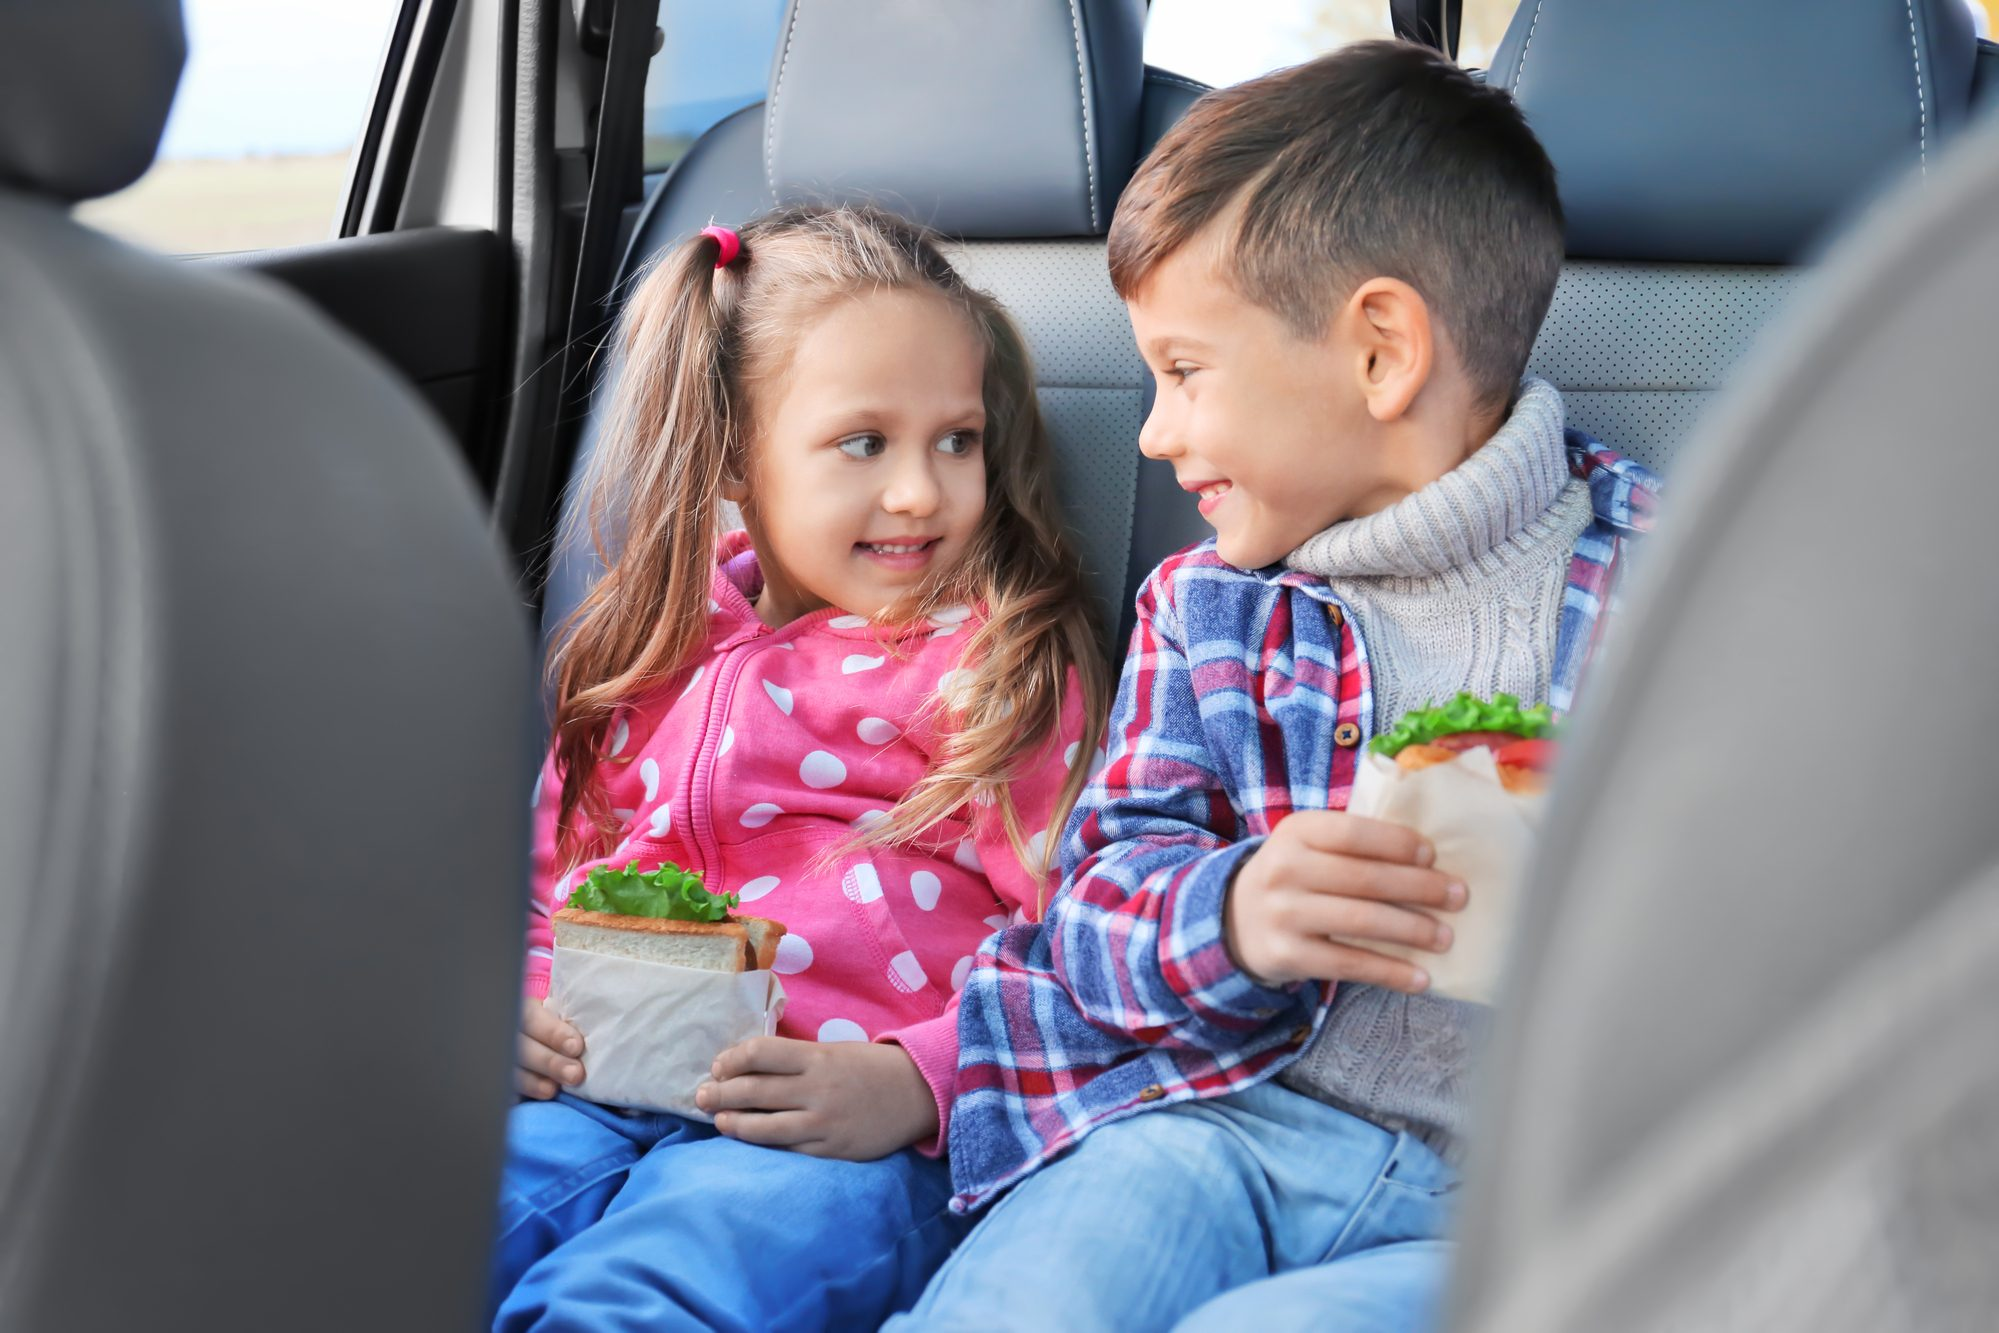 Healthy snacks are a must for road trips with kids